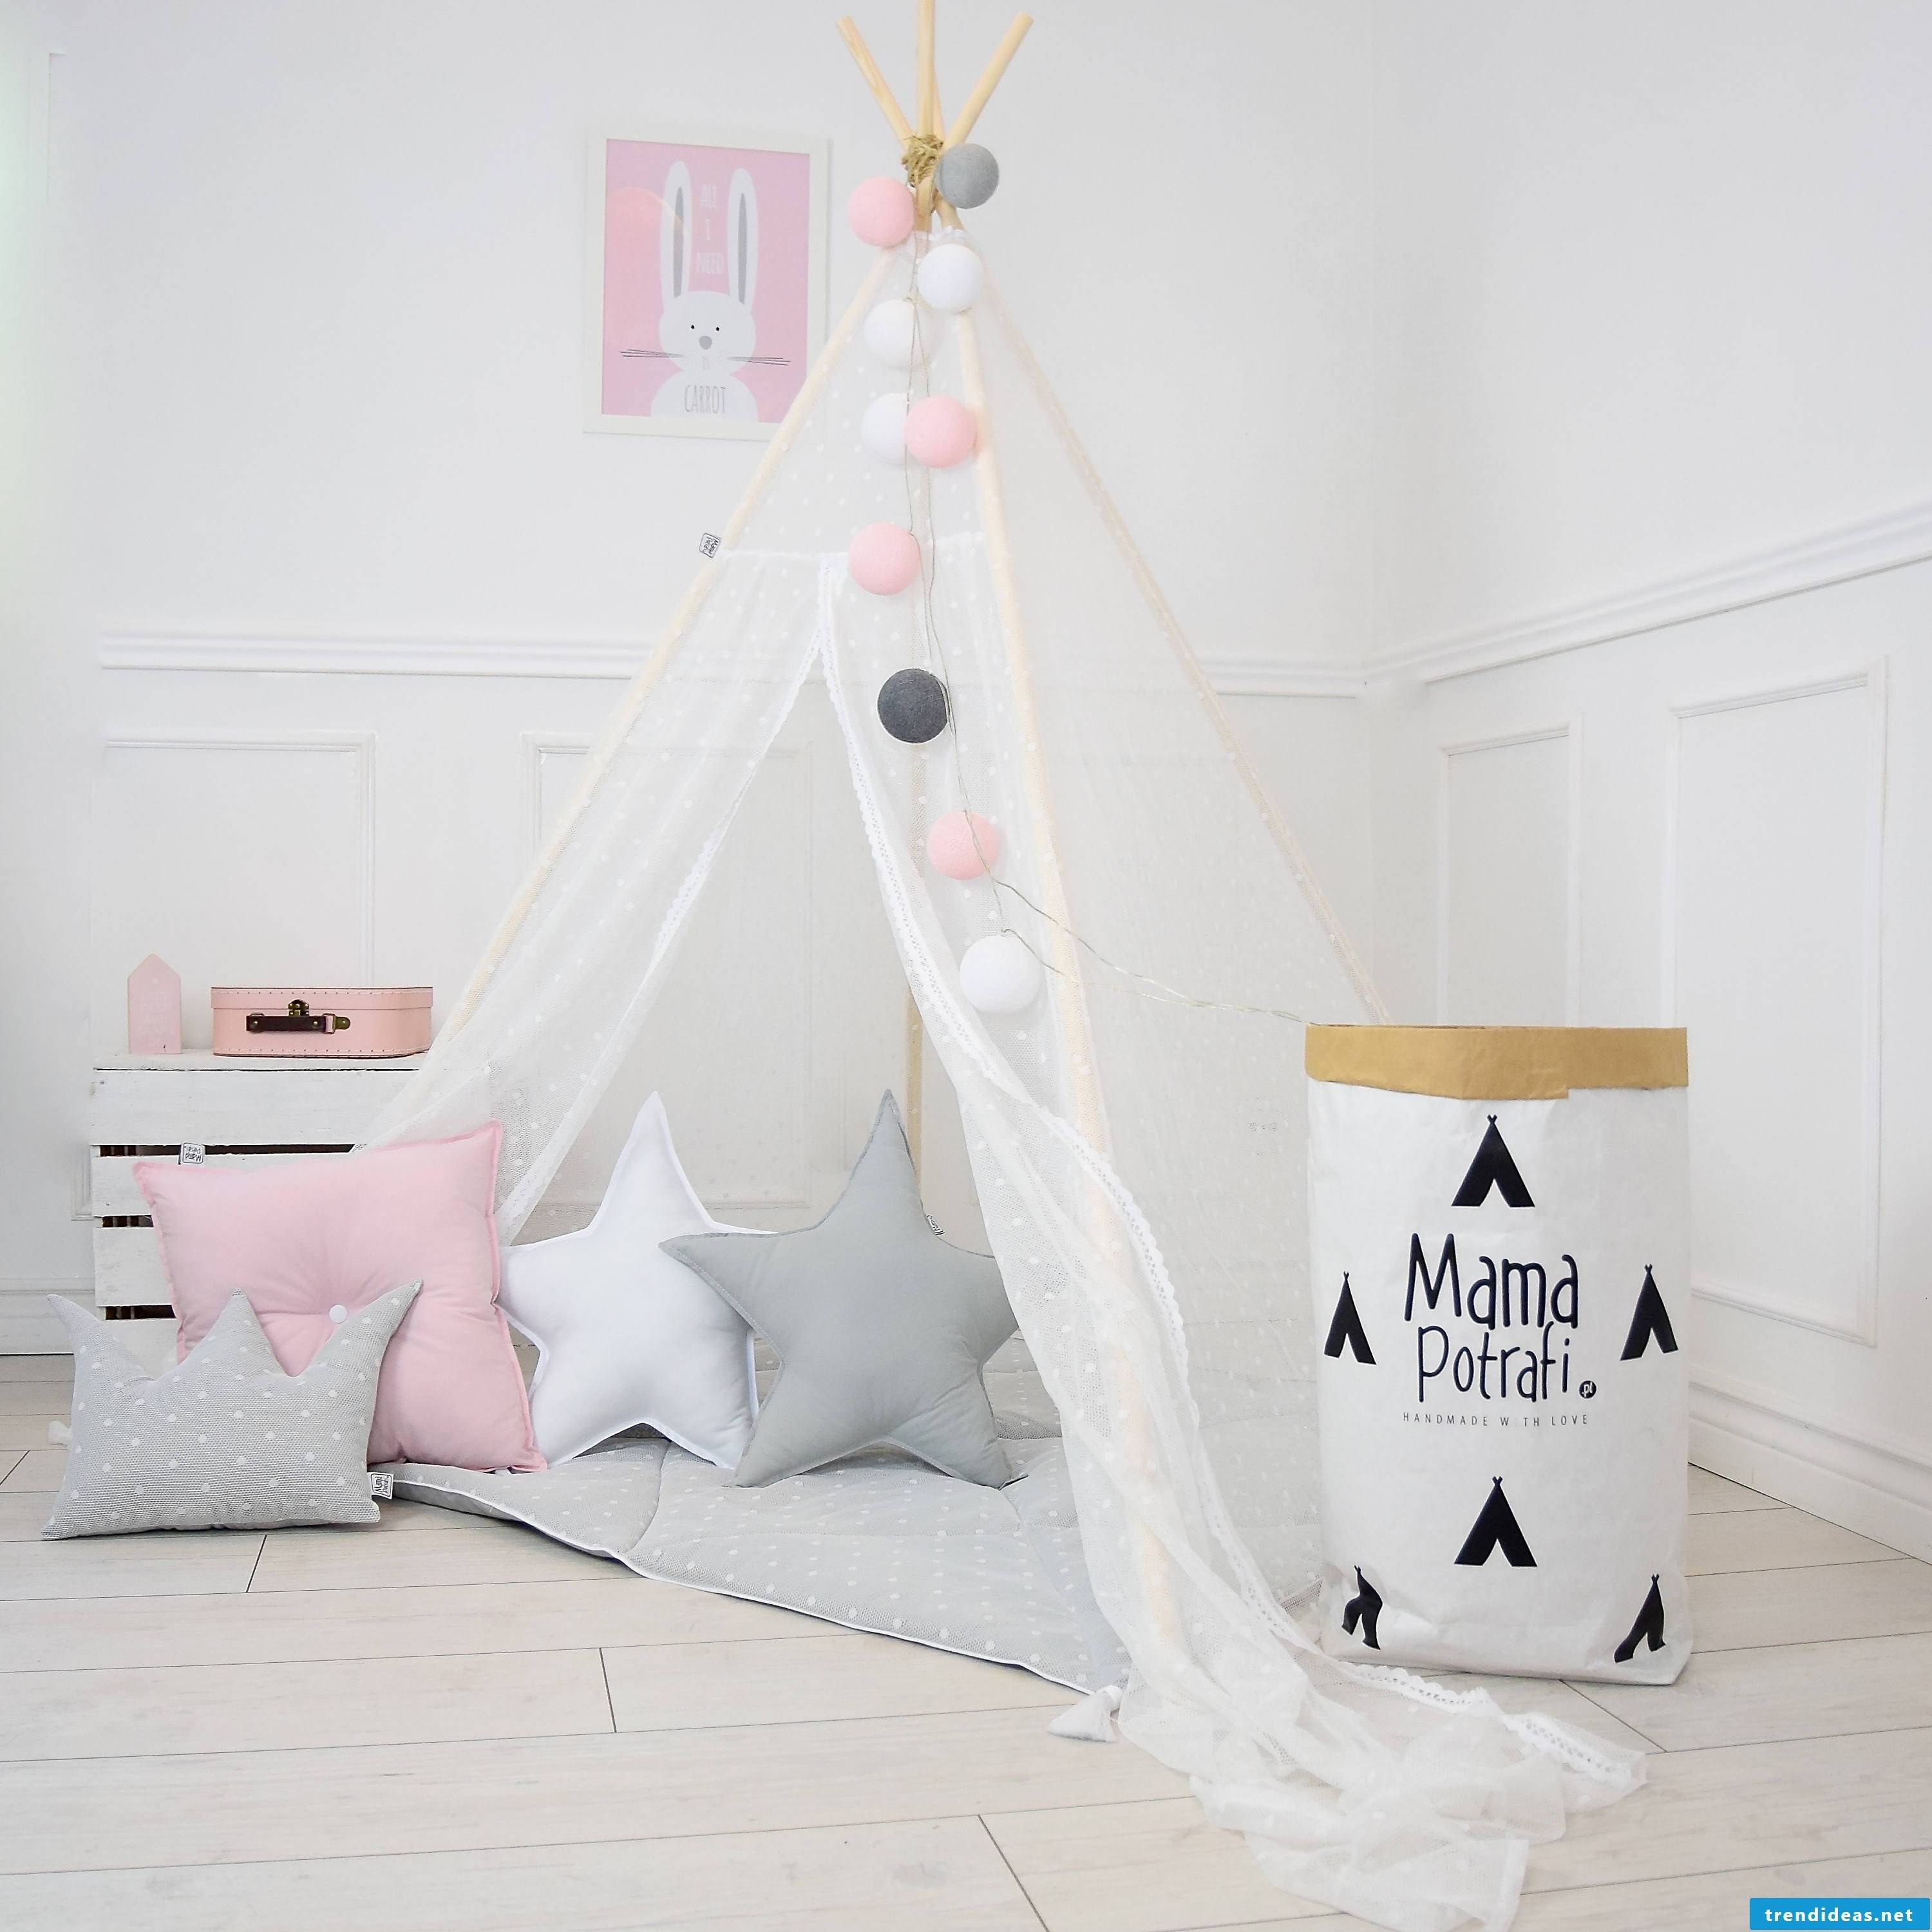 Mom can do it all - find cool here Collect cool ideas for beginners and follow this tipi tent